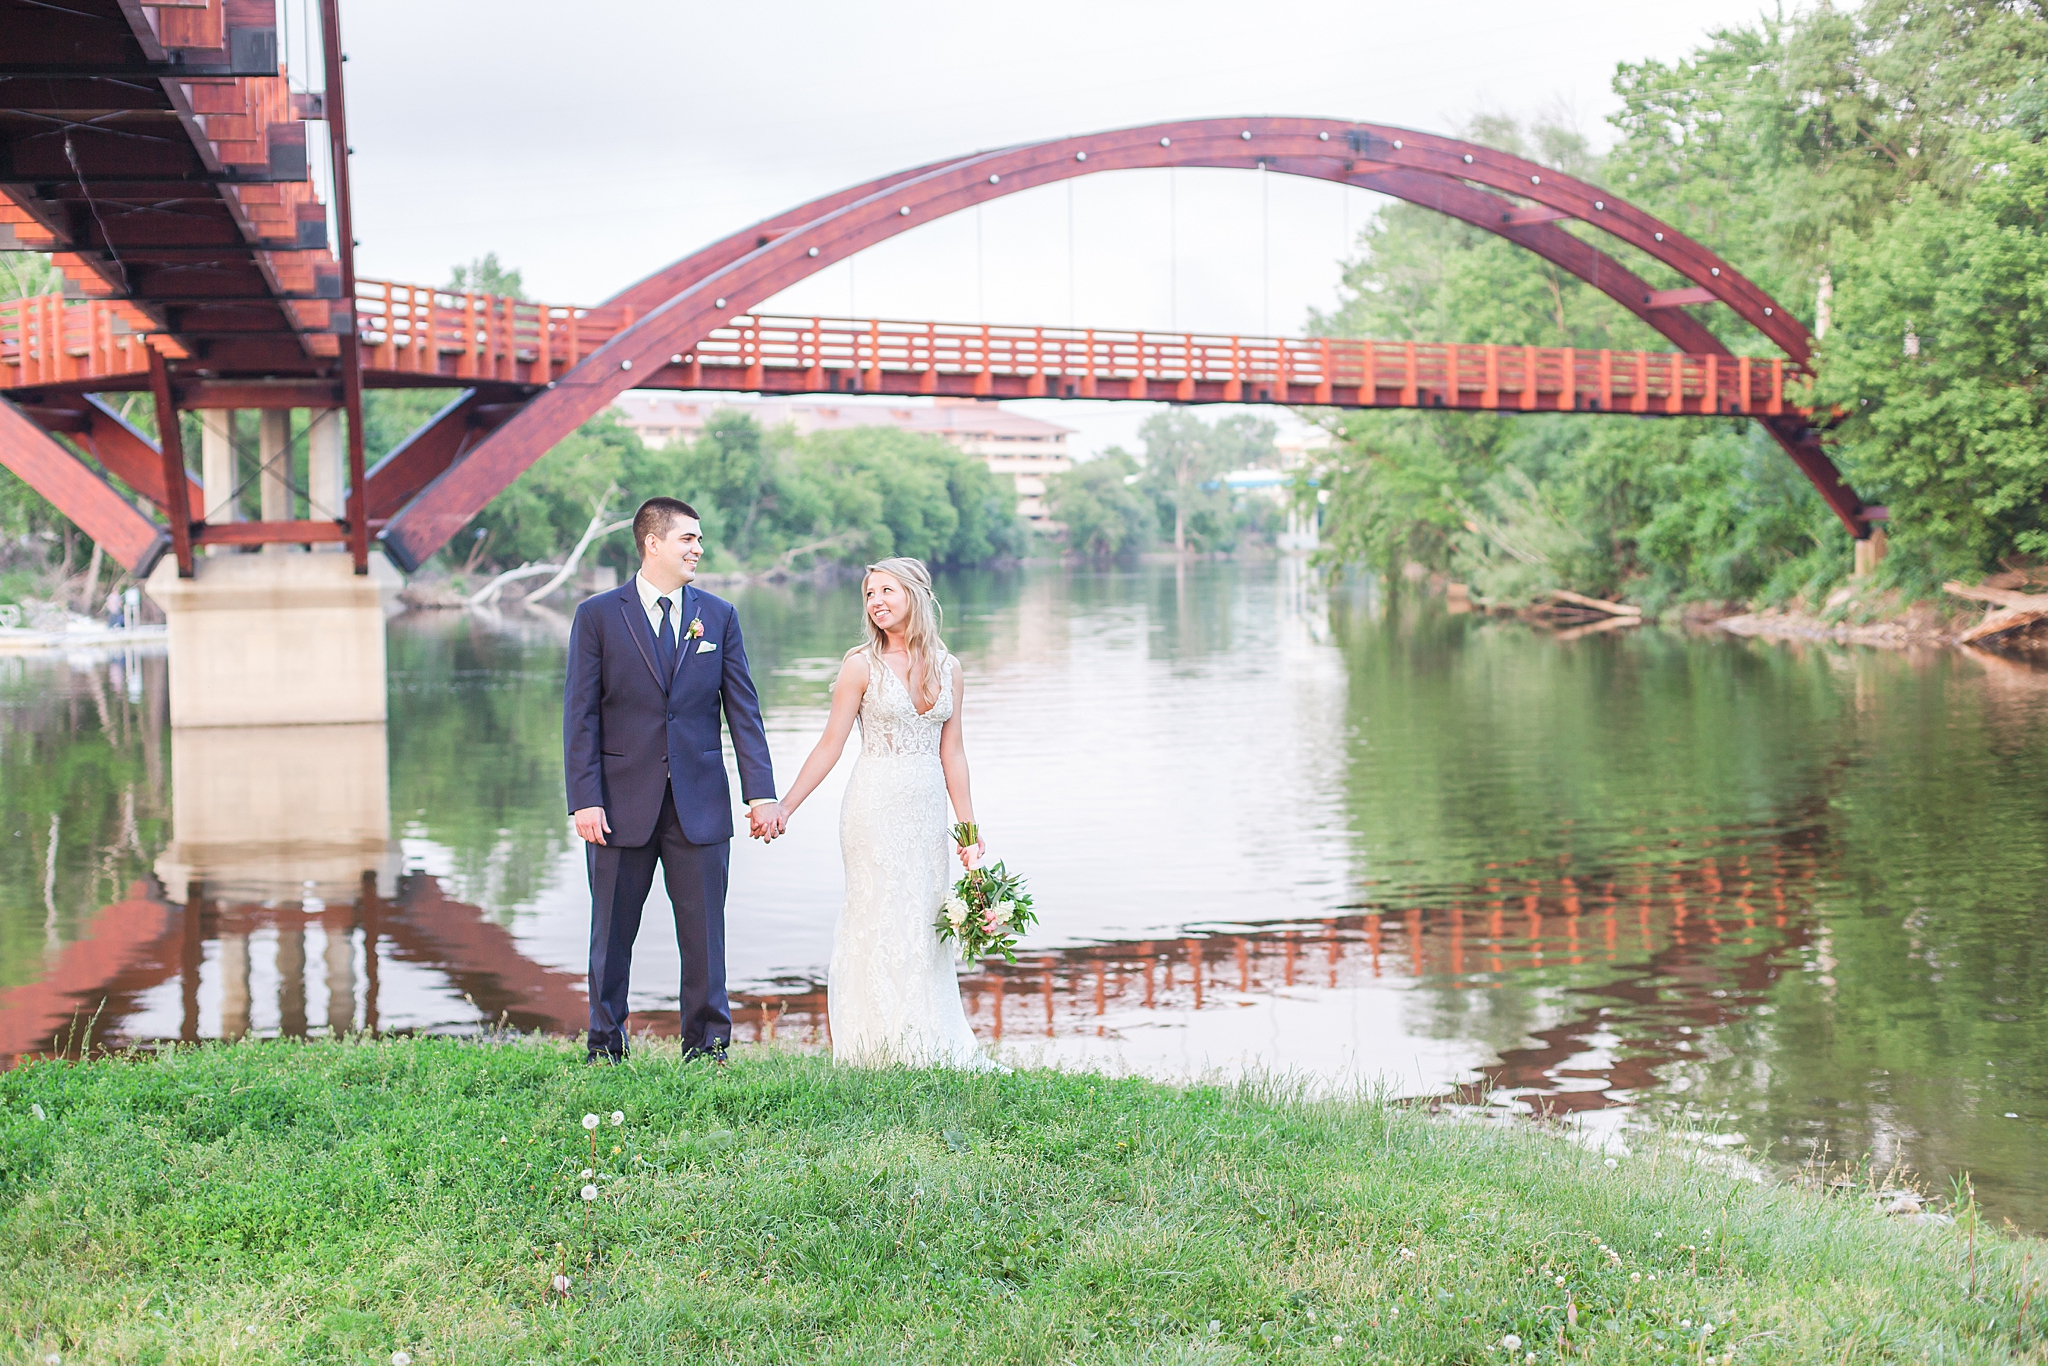 joyful-romantic-modern-laid-back-wedding-photography-in-detroit-ann-arbor-northern-mi-and-chicago-by-courtney-carolyn-photography_0019.jpg